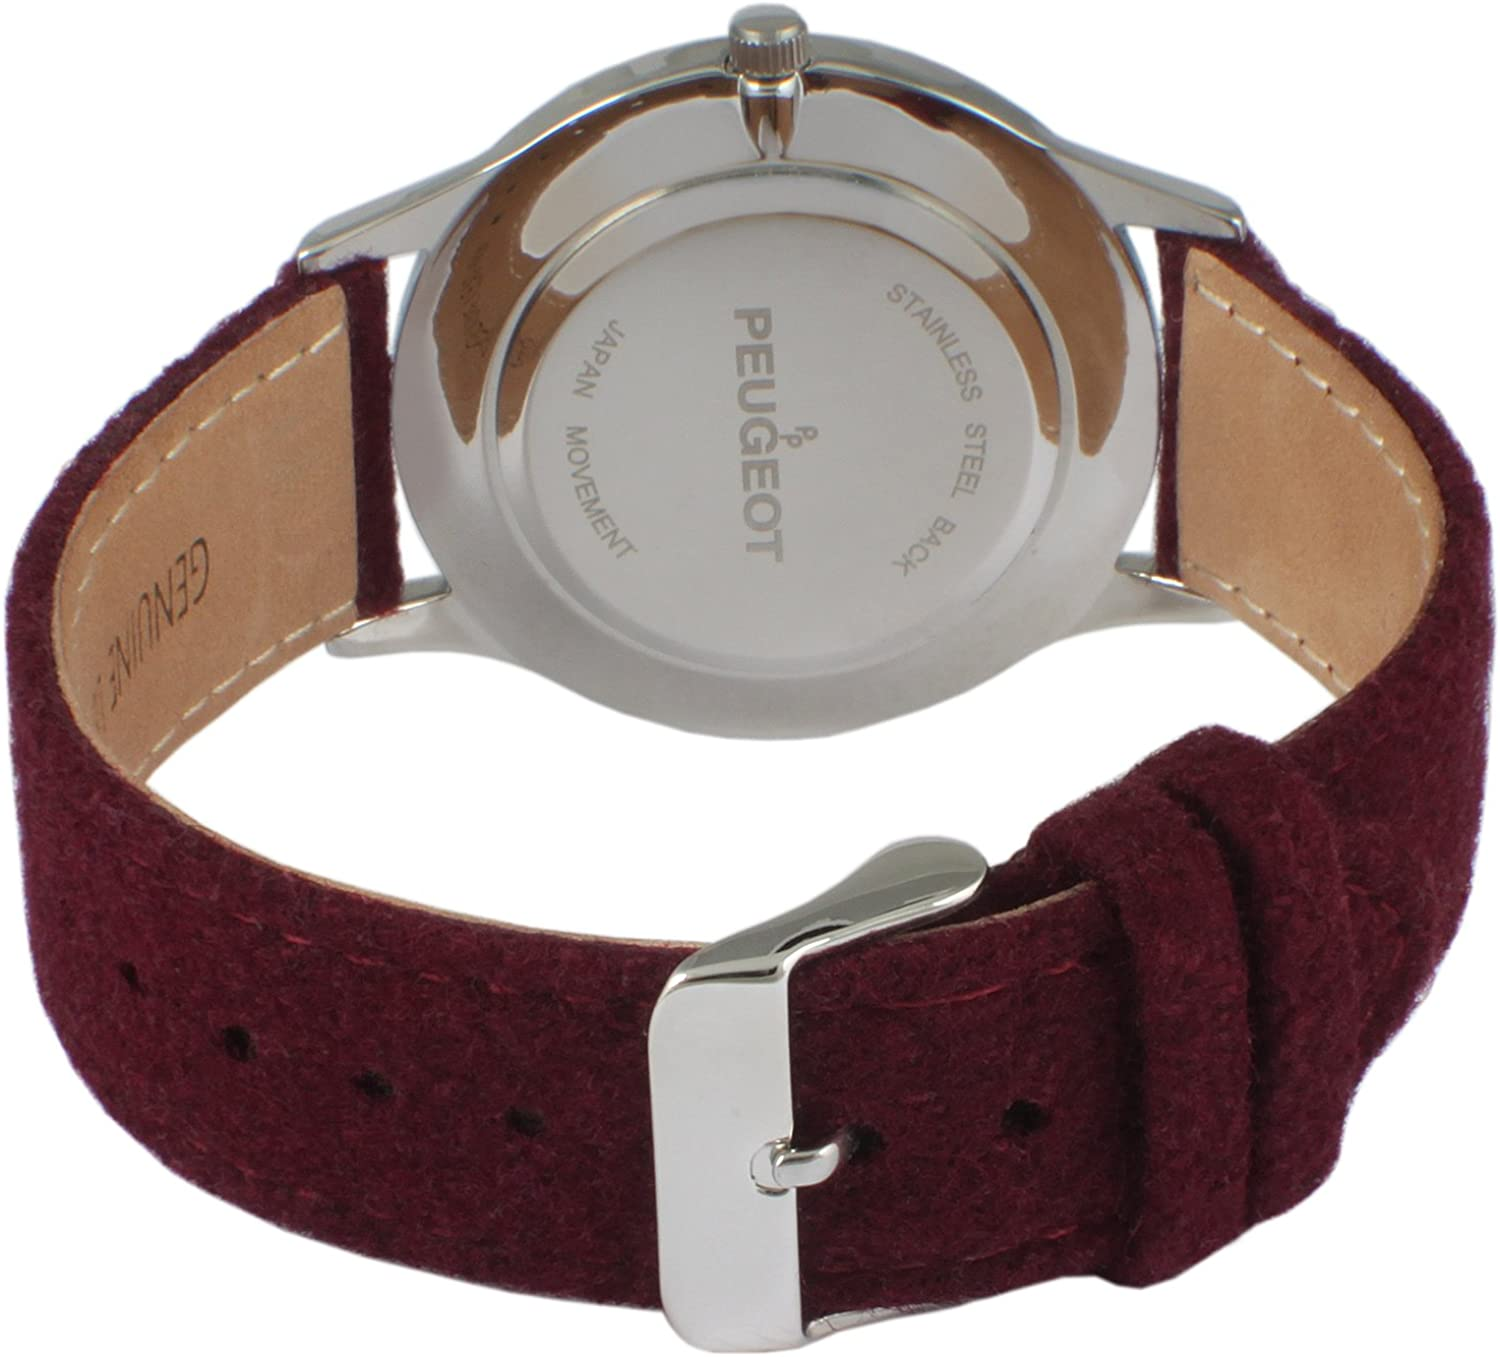 Peugeot Women Contemporary Silver Slim Case Casual Wrist Watch w/Matching Canvas Wool Strap Wine